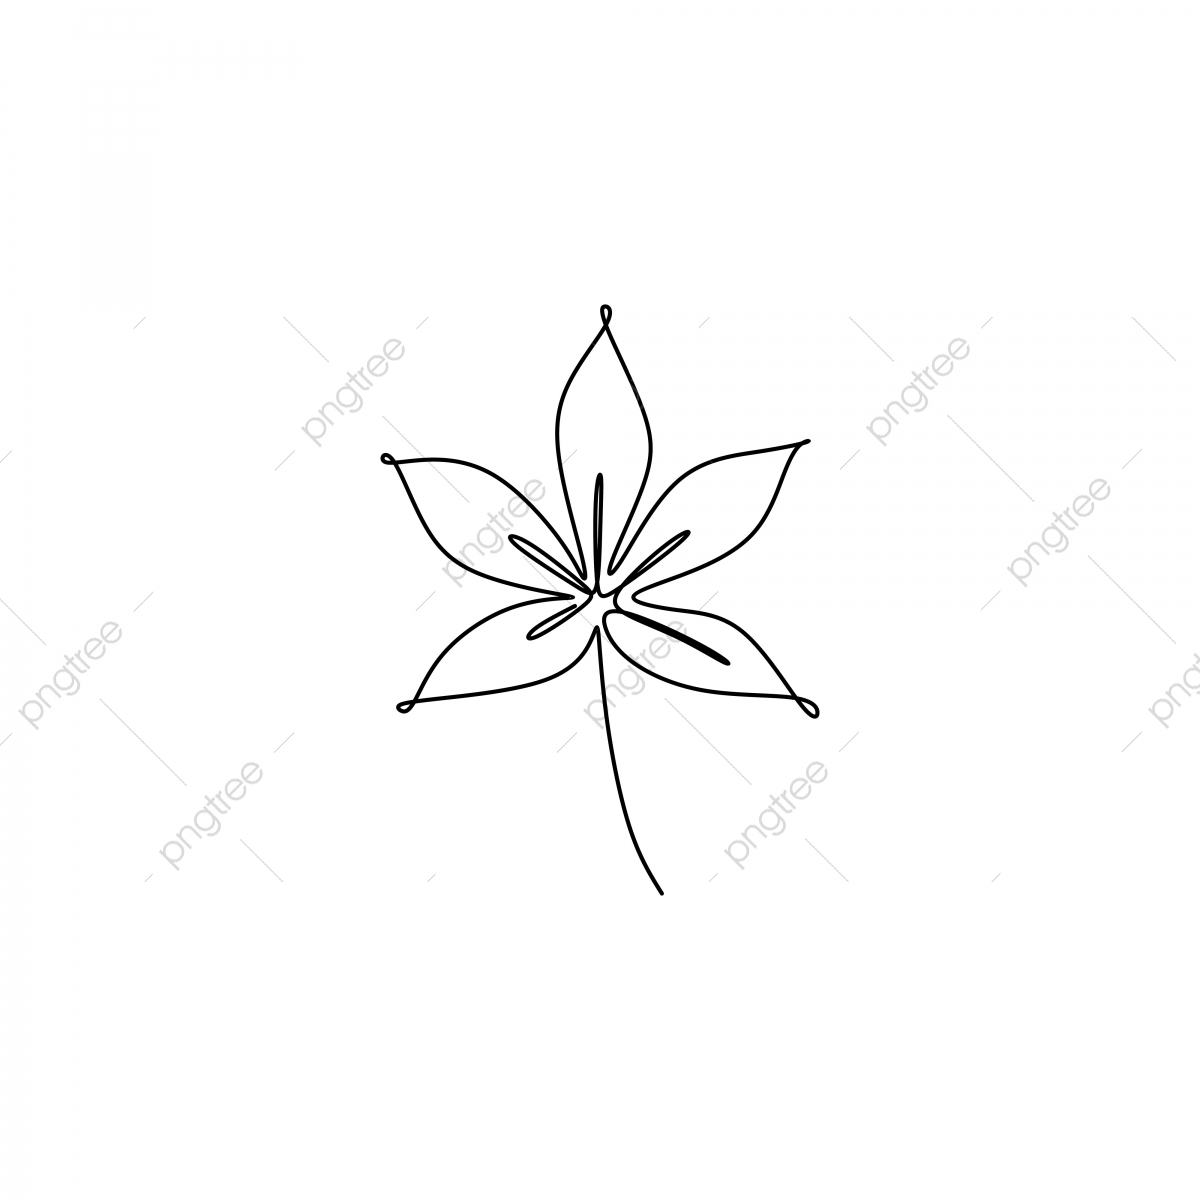 One Line Drawing Of Leaf With Simple Lineart Minimalsm Style Design Vector Outline Png And Vector With Transparent Background For Free Download